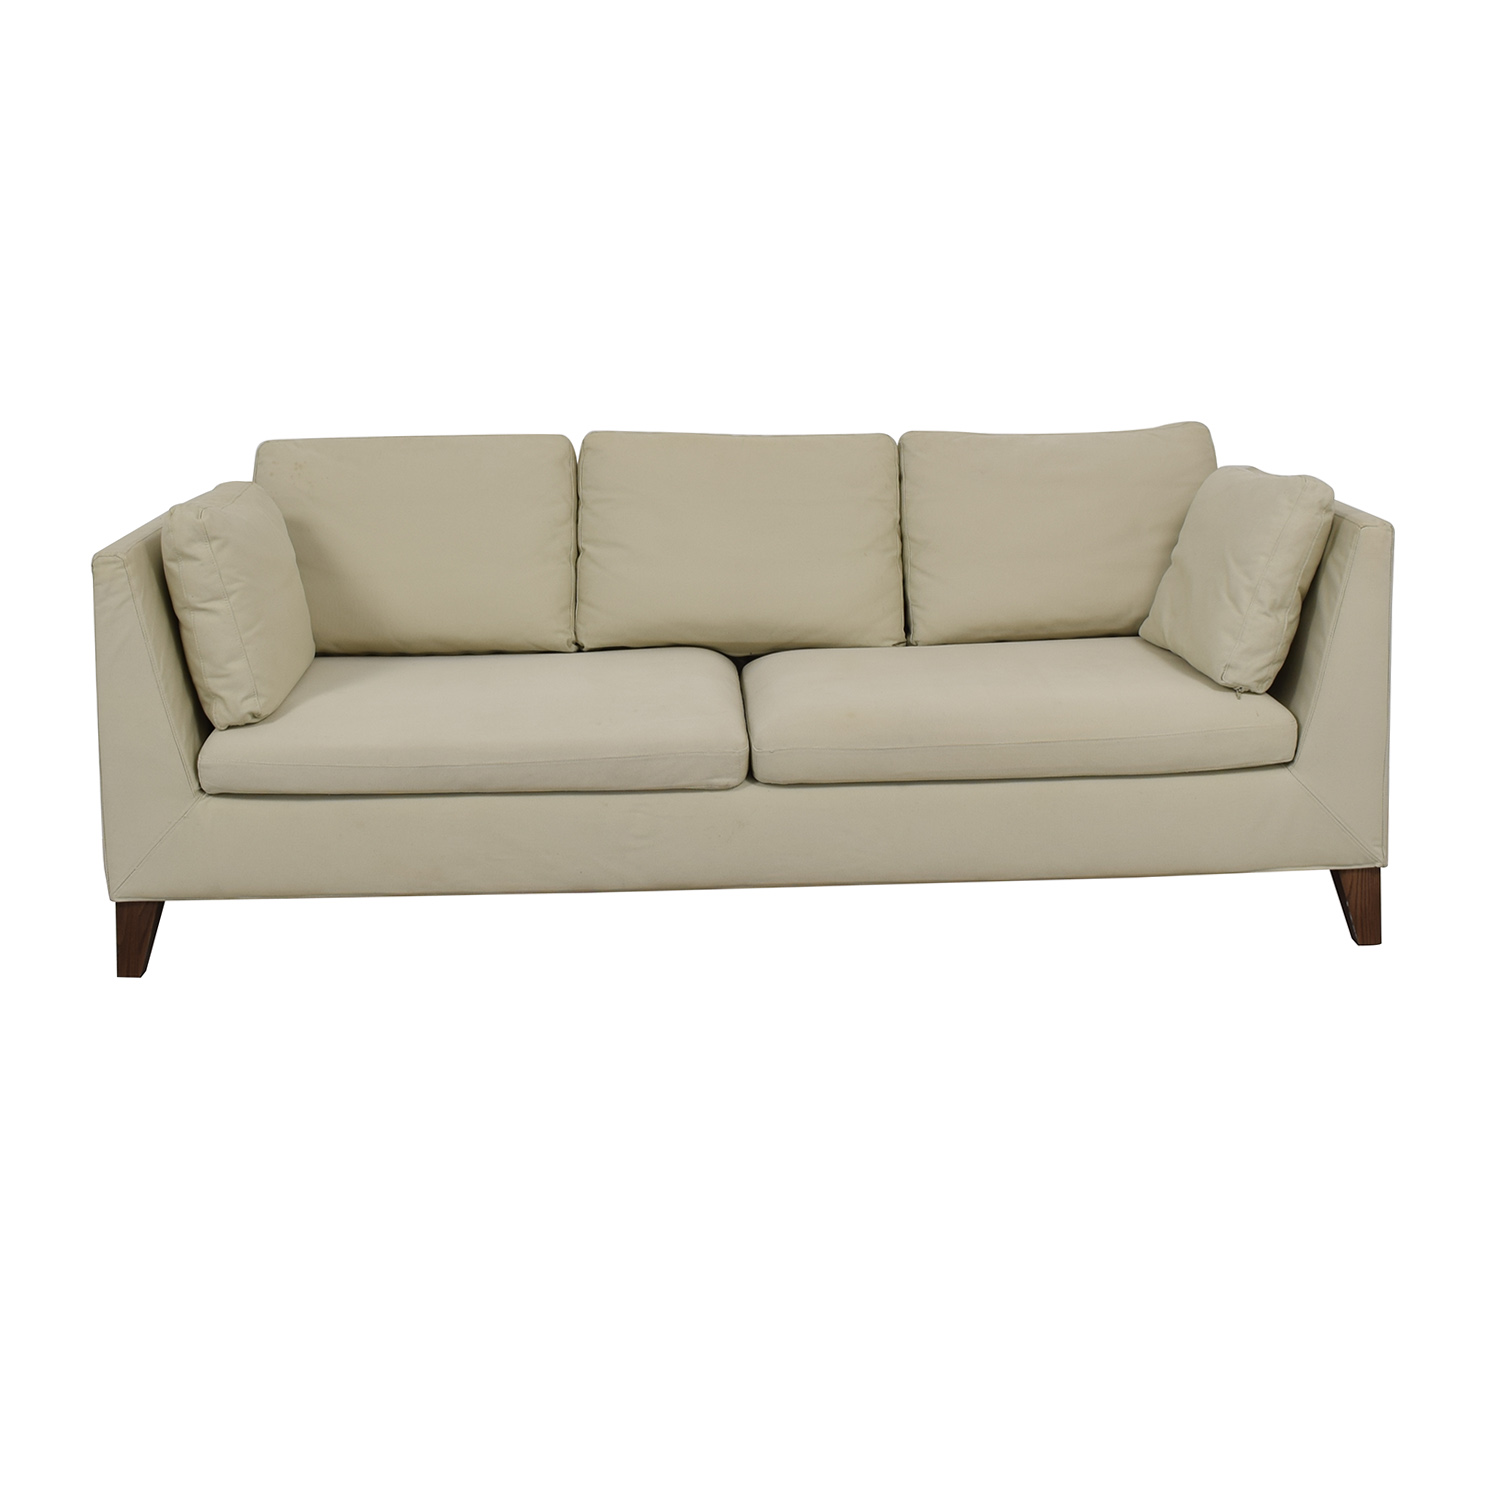 IKEA IKEA Stockholm Beige Two-Cushion Sofa / Sofas